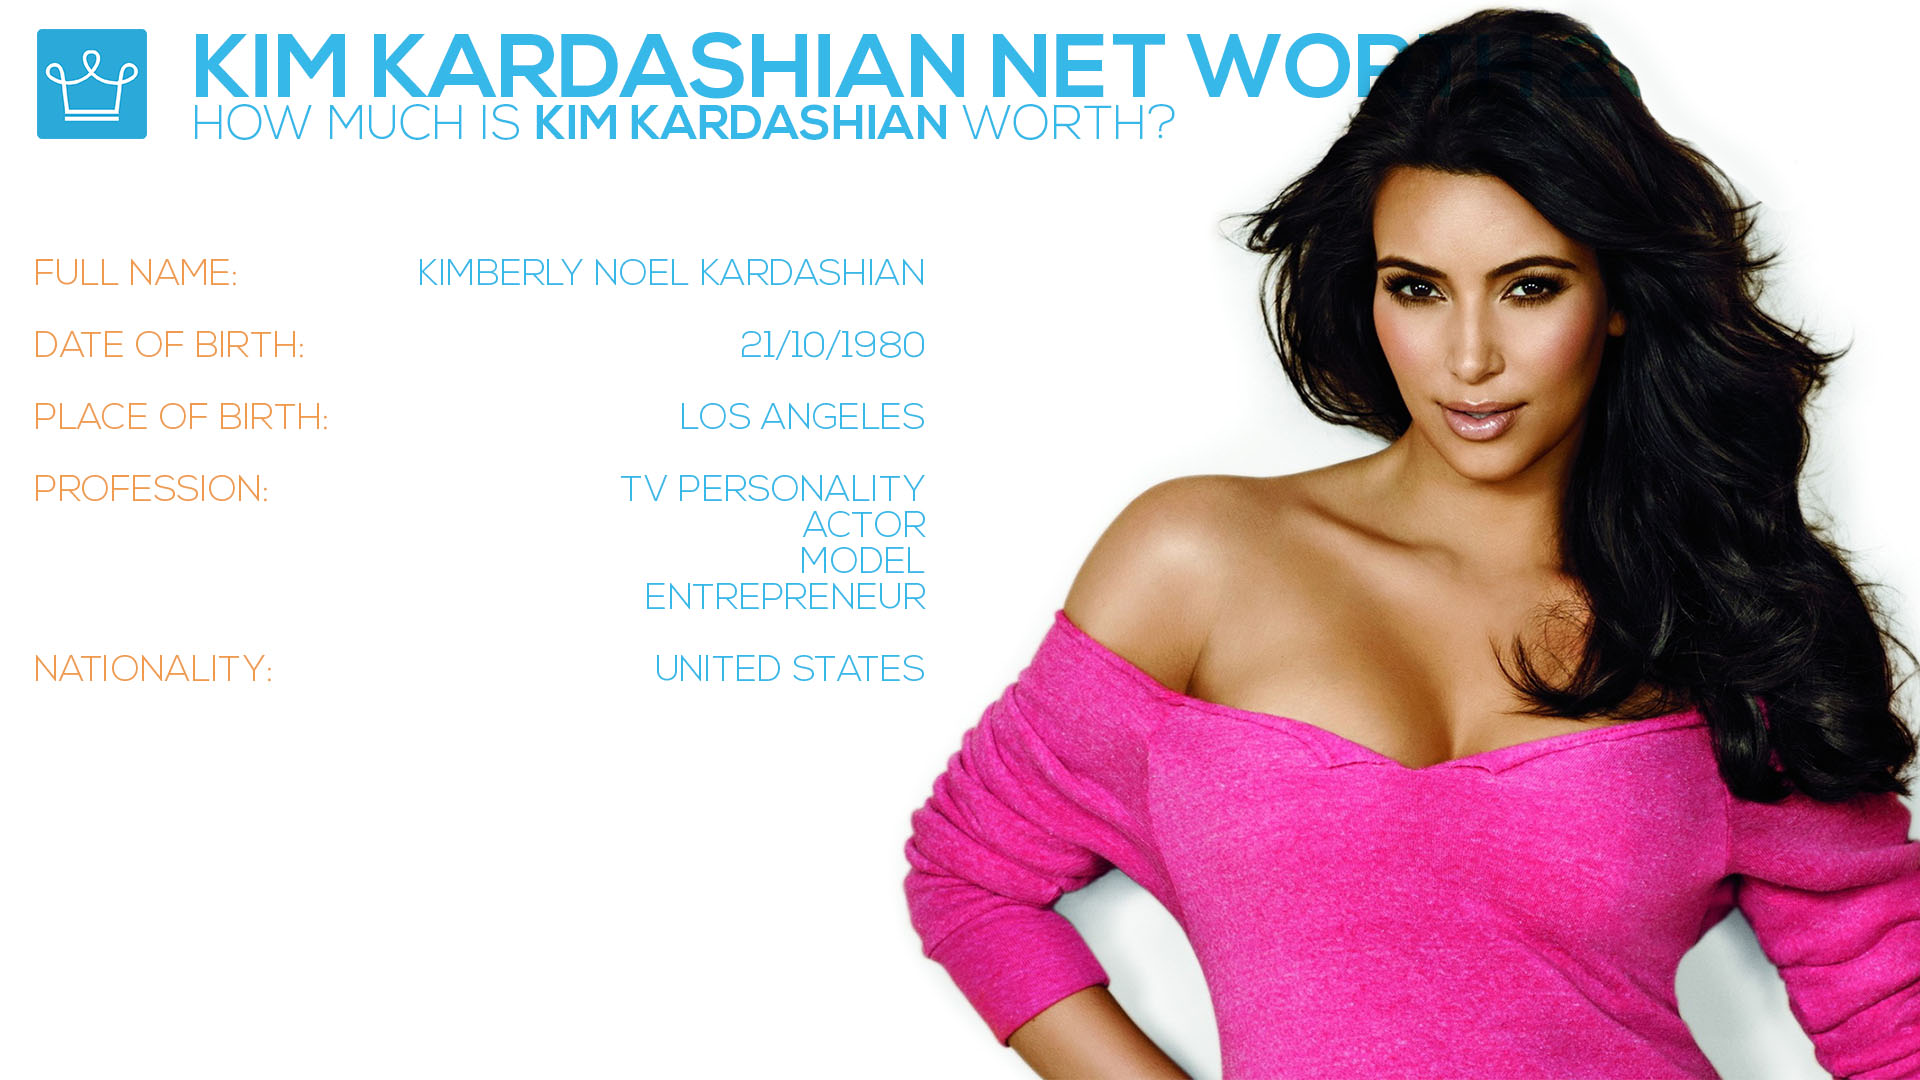 Kim kardashian net worth 2016 for How many kardashians are there